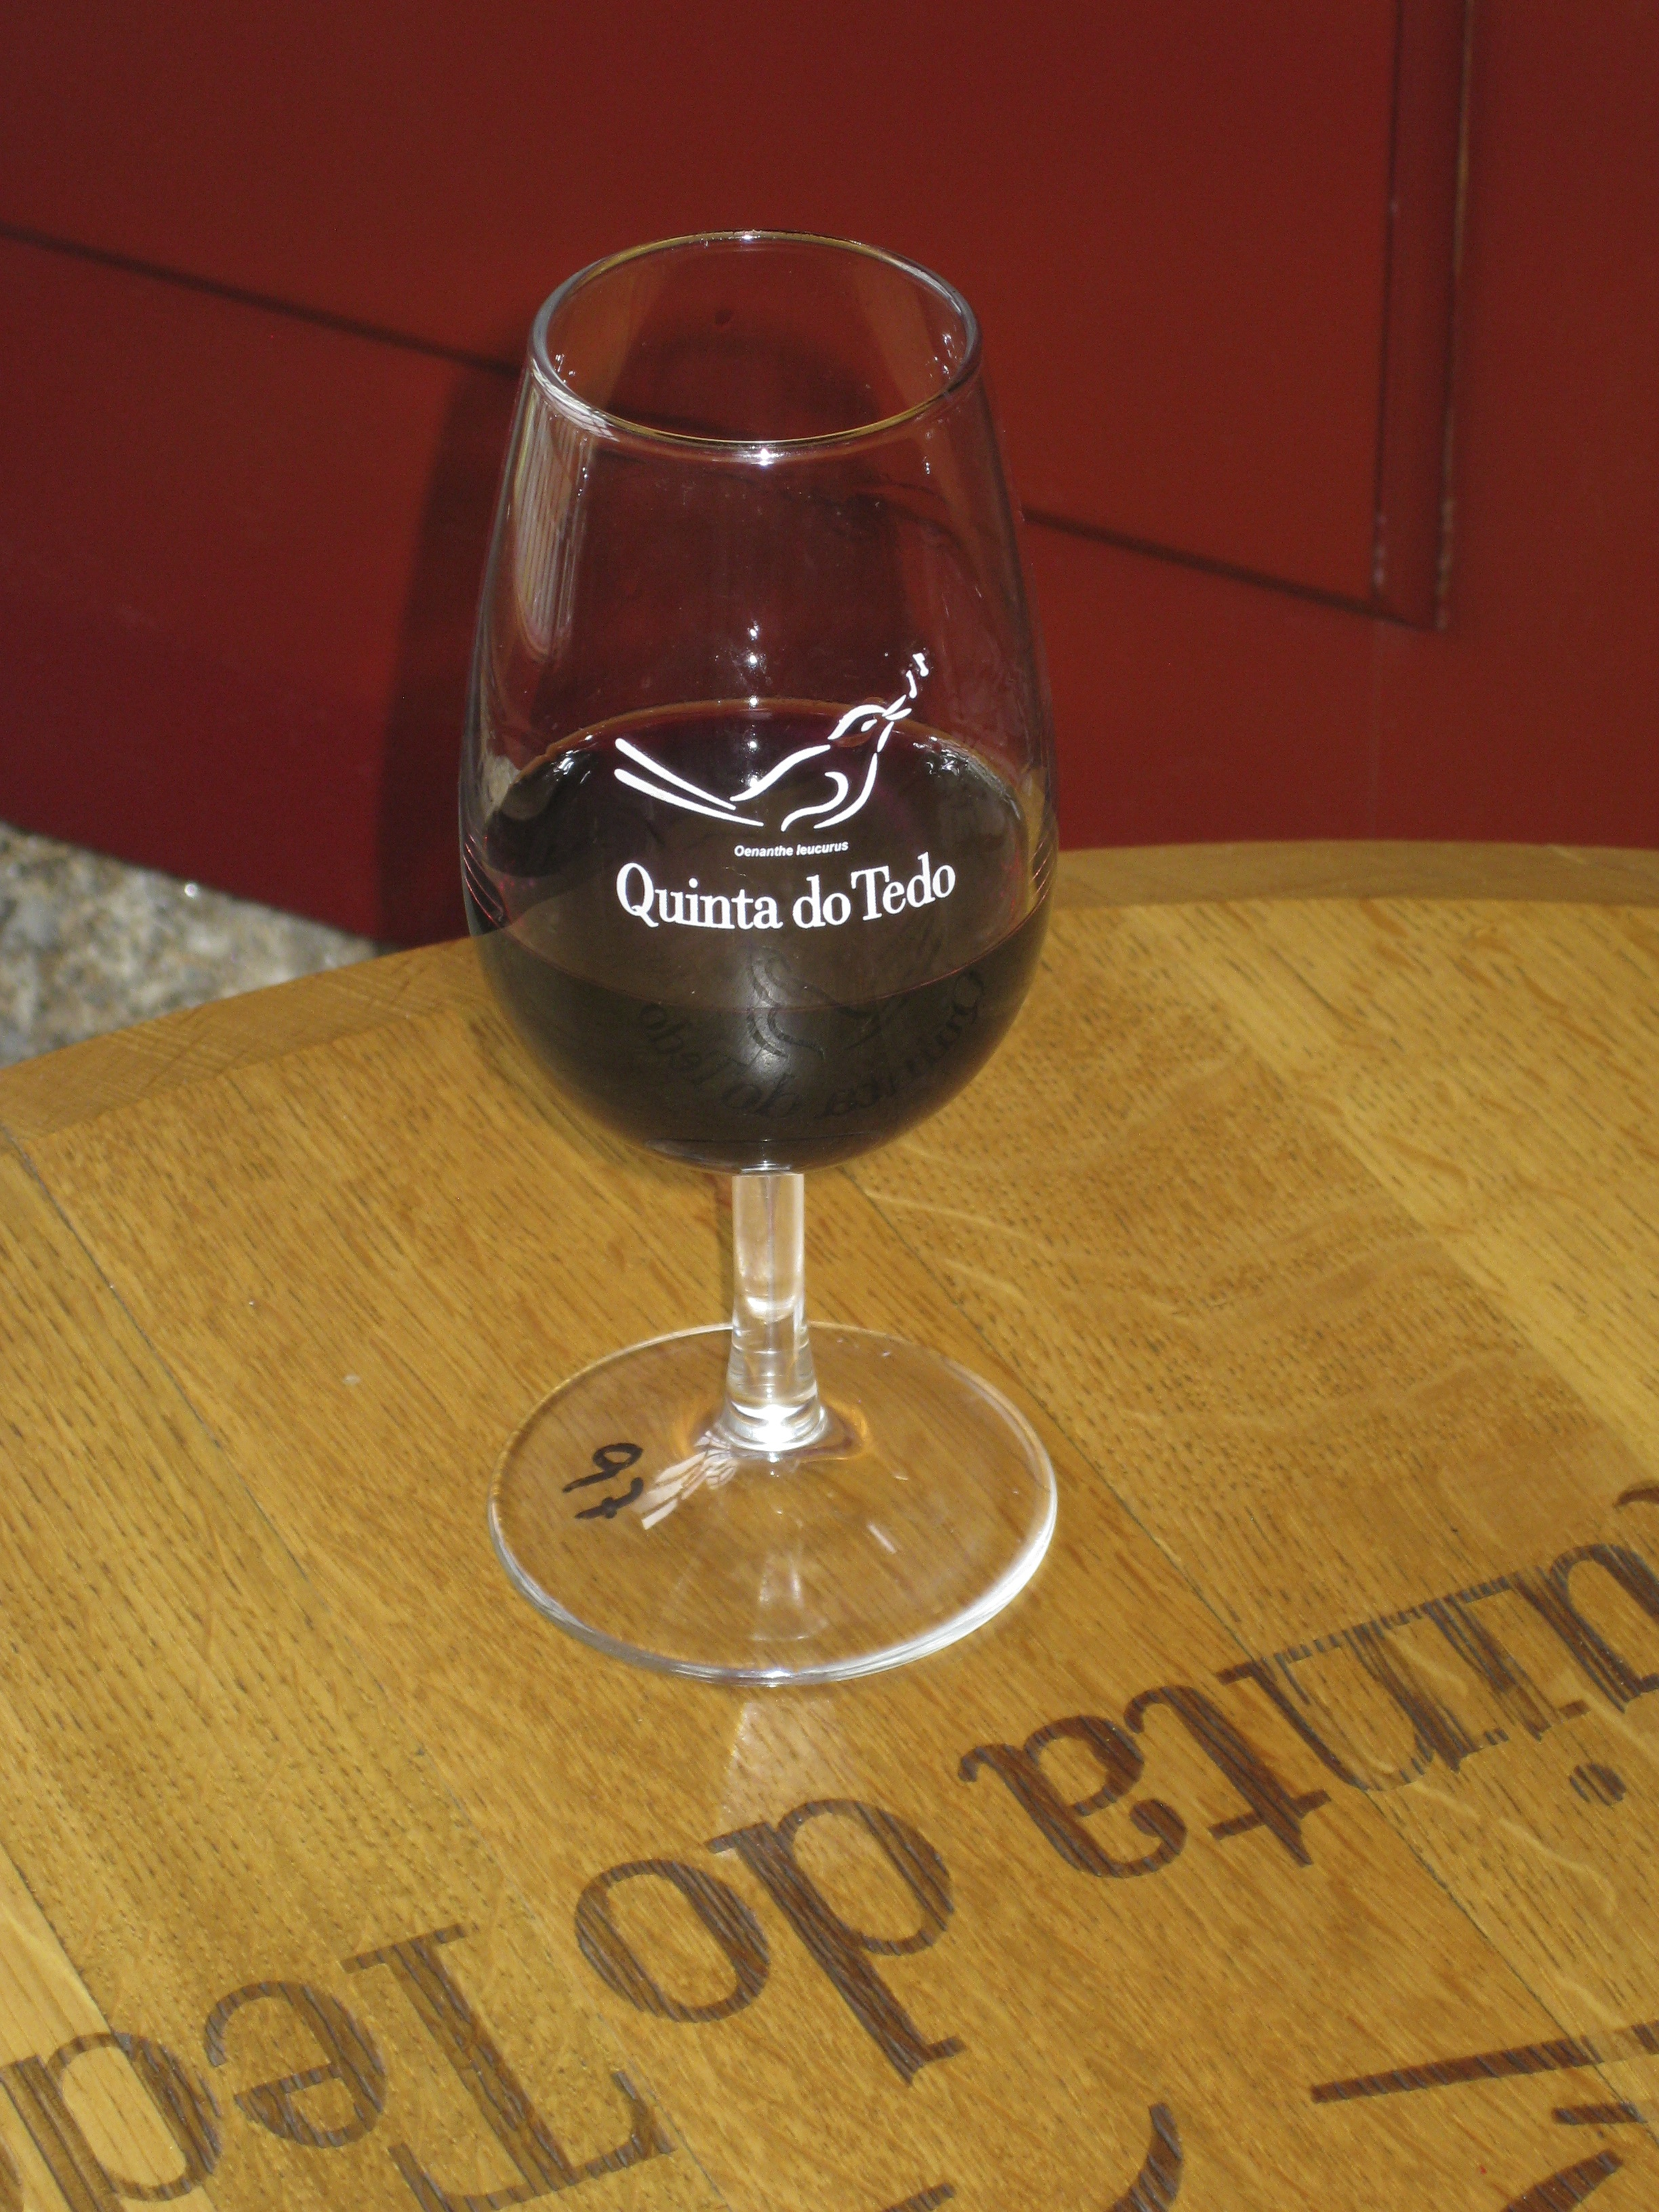 …and to enjoy a glass of Quinta do Tedo.